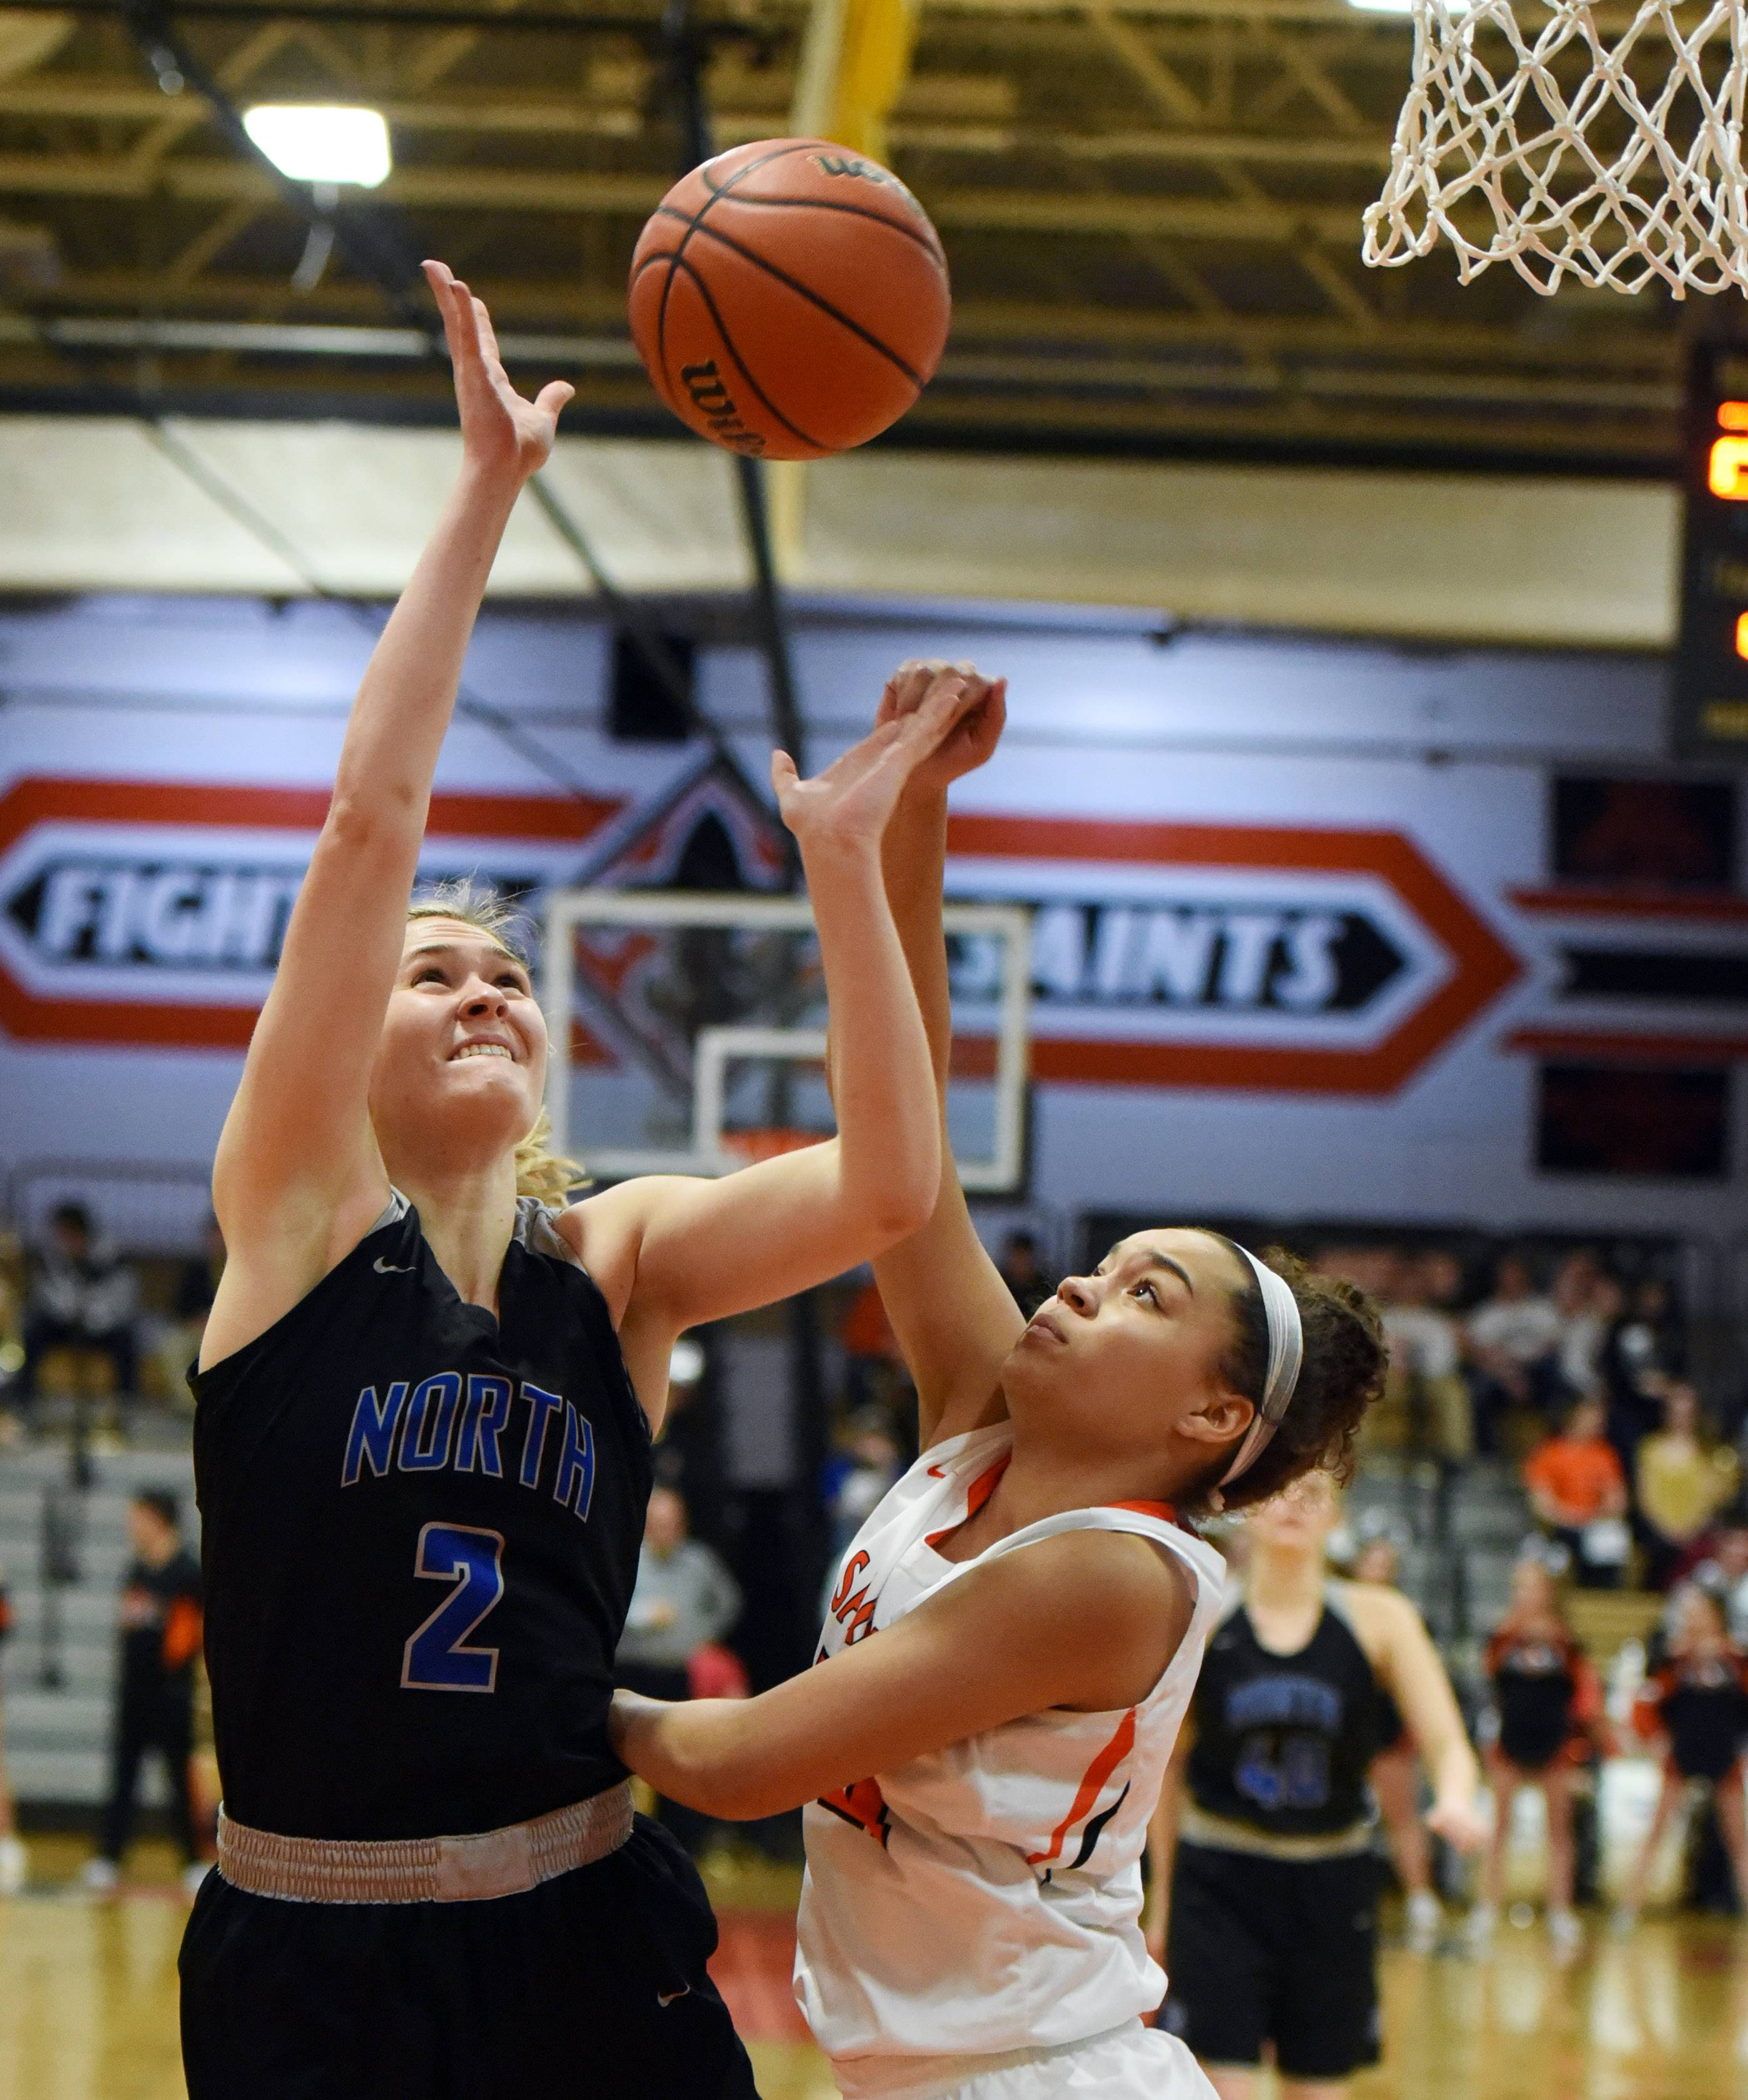 St. Charles North's Anna Davern is fouled by St. Charles East's Taylor Shead during Friday's game at East.